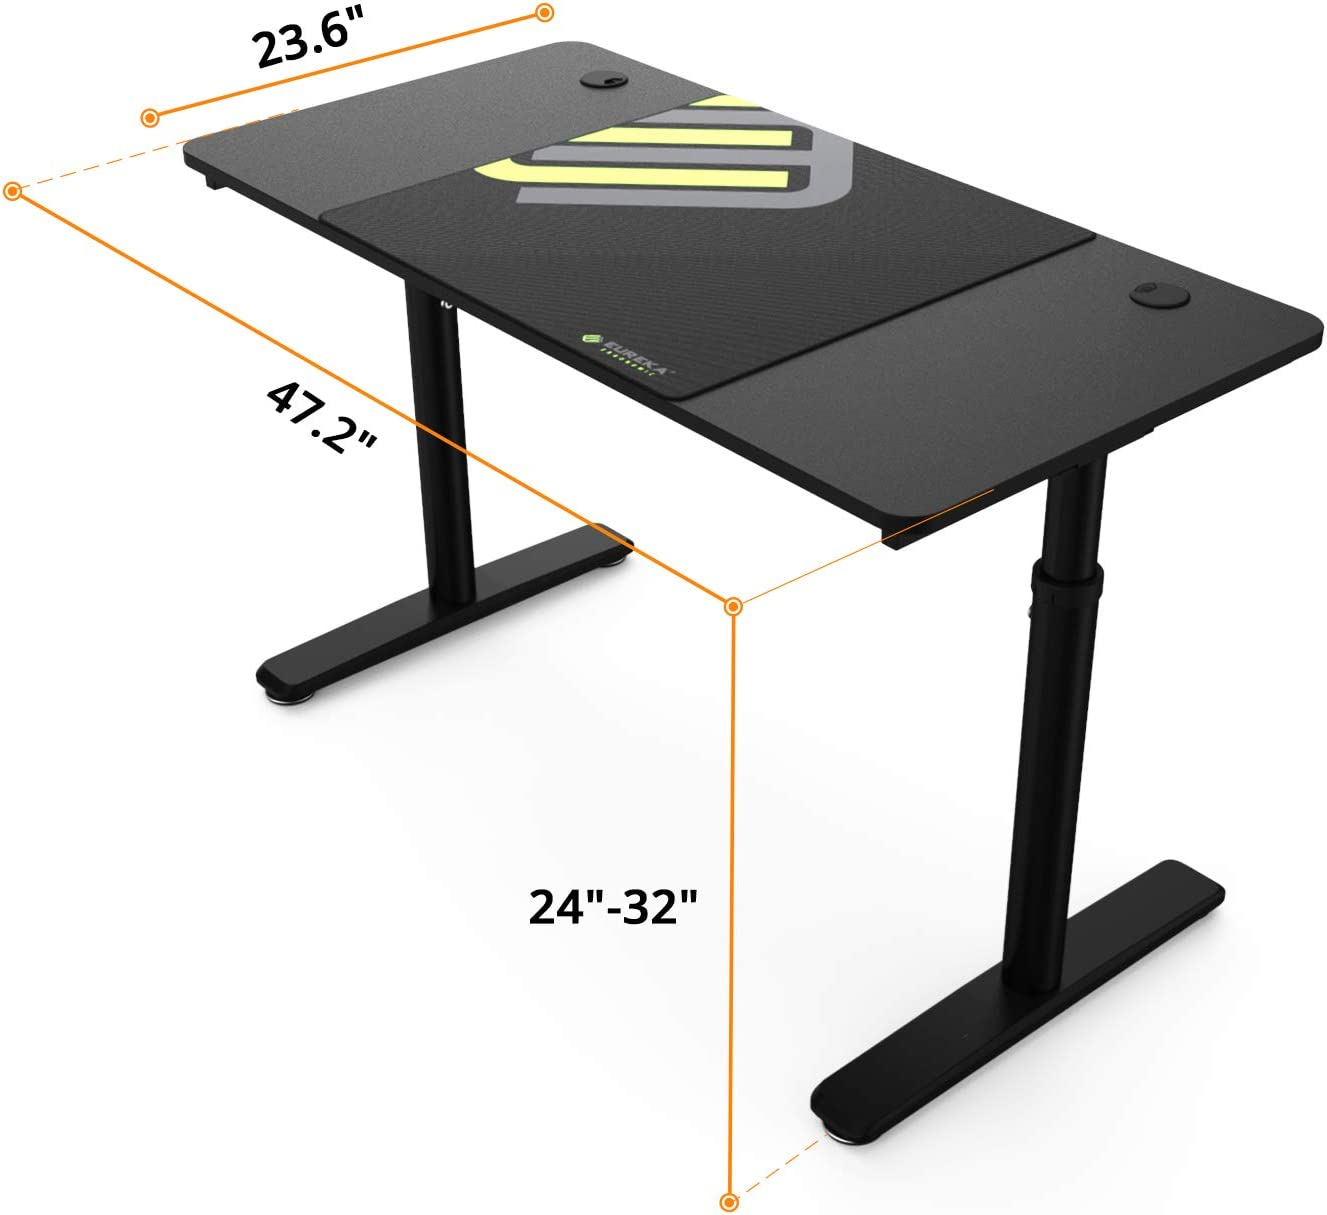 Study Writing PC Laptop Table Workstation 60 Inch with Free Large Mousepad DESIGNA Height Adjustable Computer Desk Widen Space Office Home Gaming Desk Multi-Functional Black